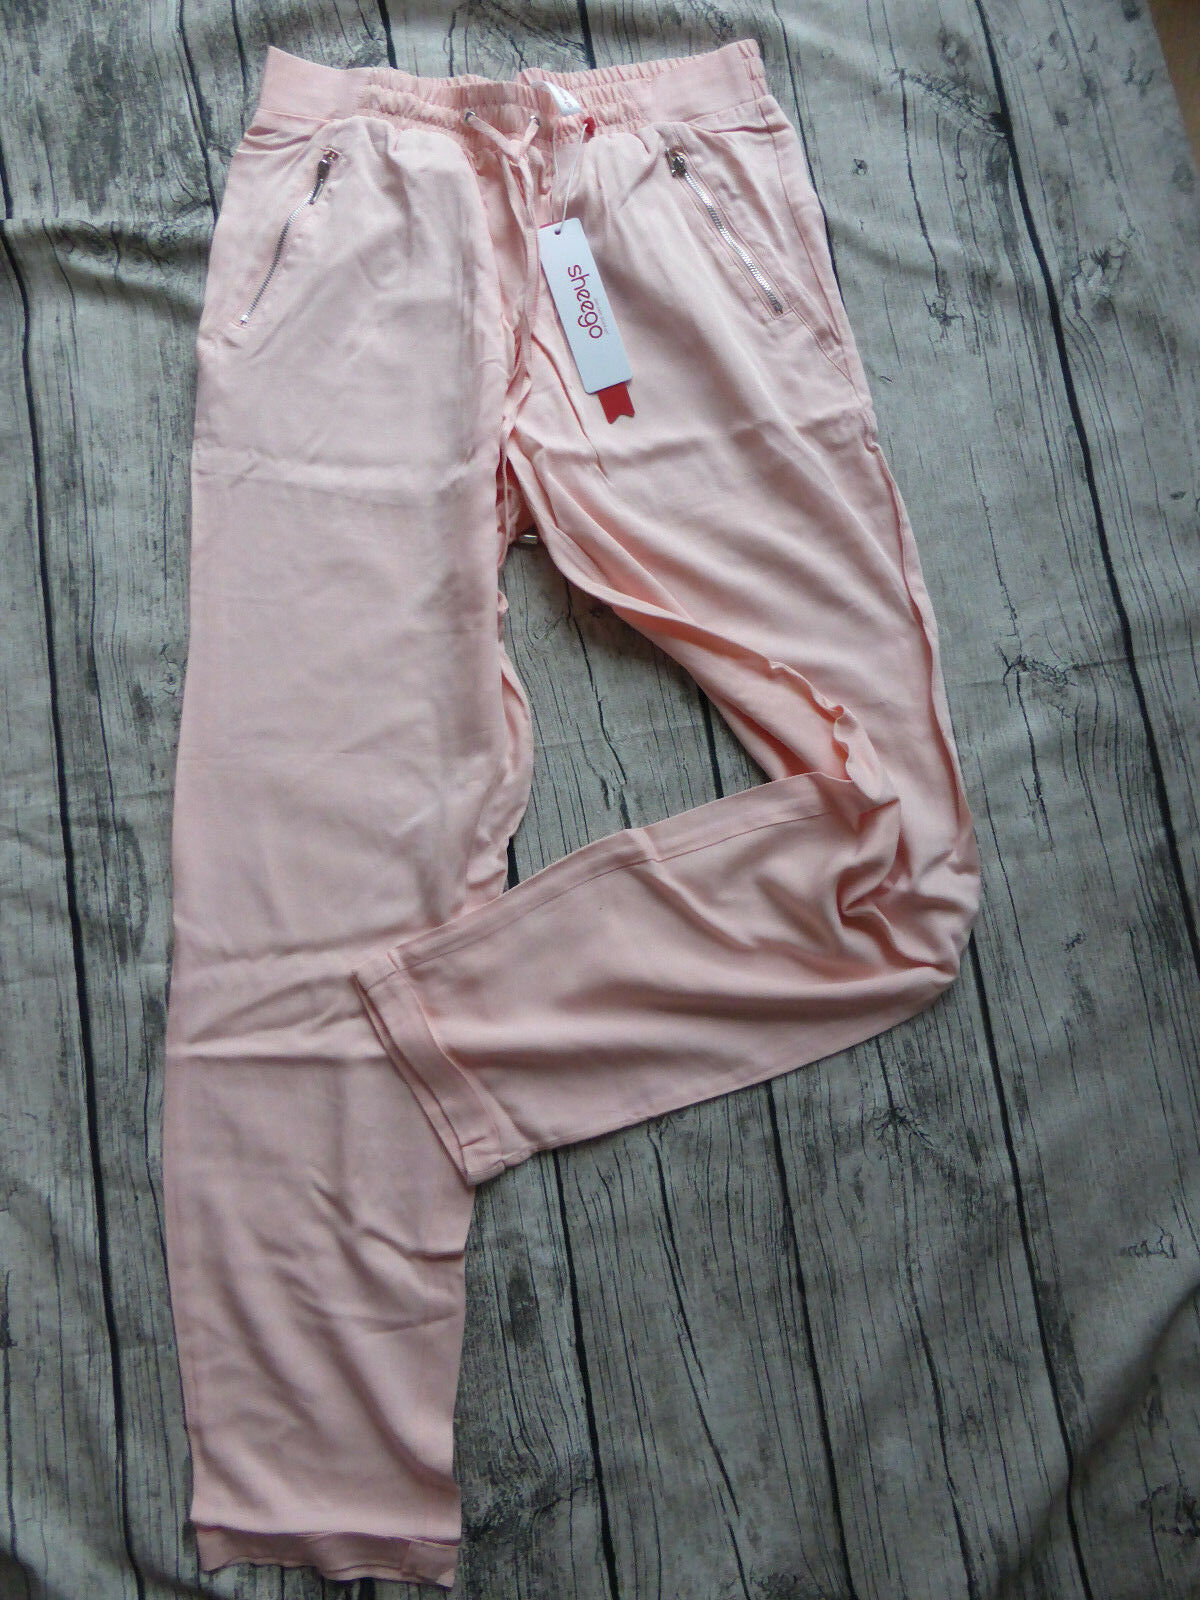 Sheego Viscose Cloth Pants Trousers Baggy Trousers Size 42 - 58 pink (425) NEW